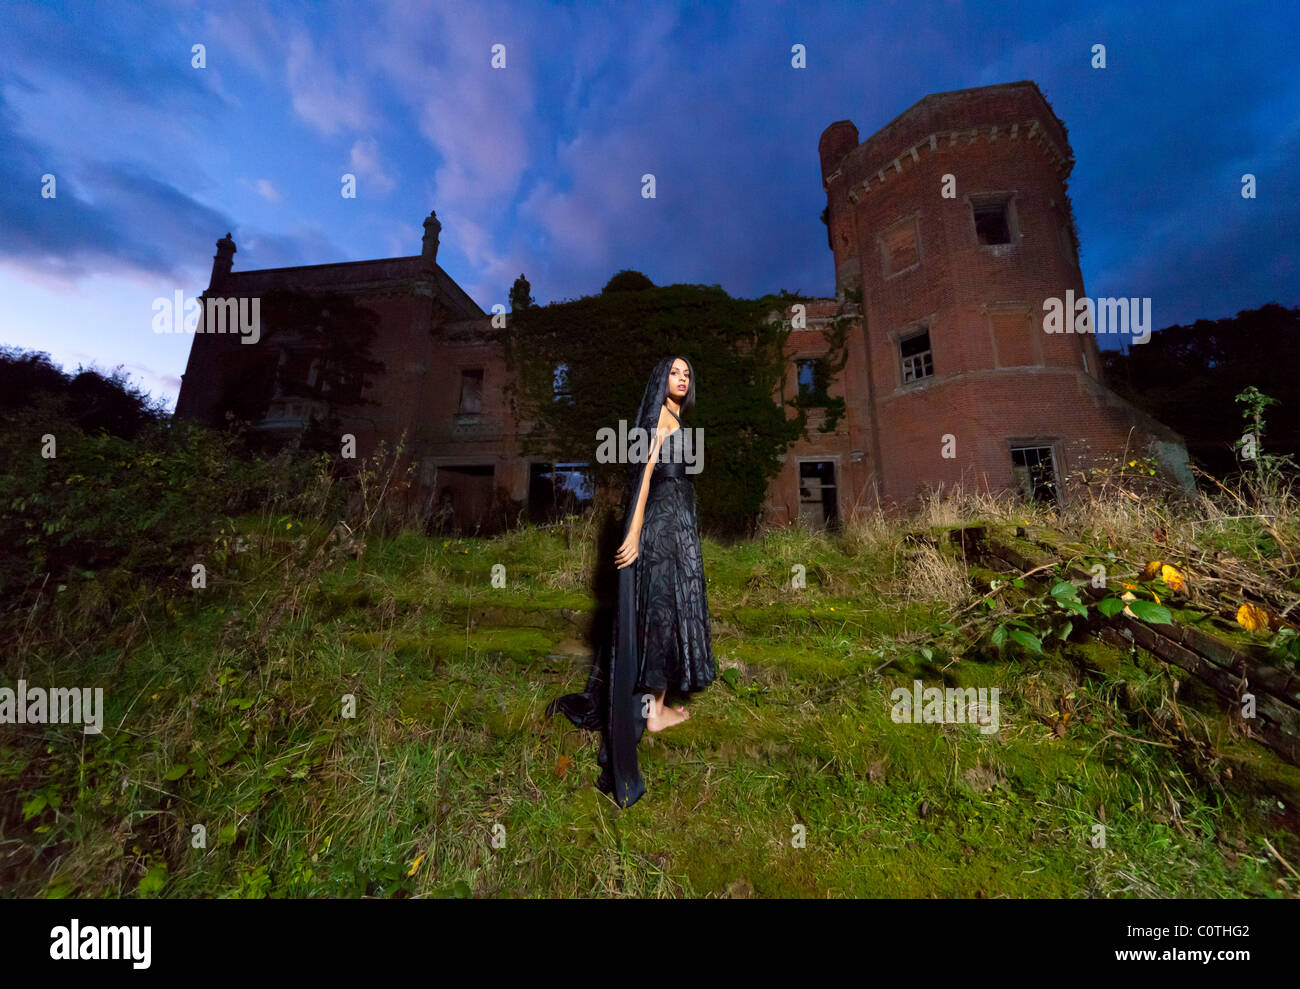 mysterious woman stood in front of an old derelict large country mansion house - Stock Image